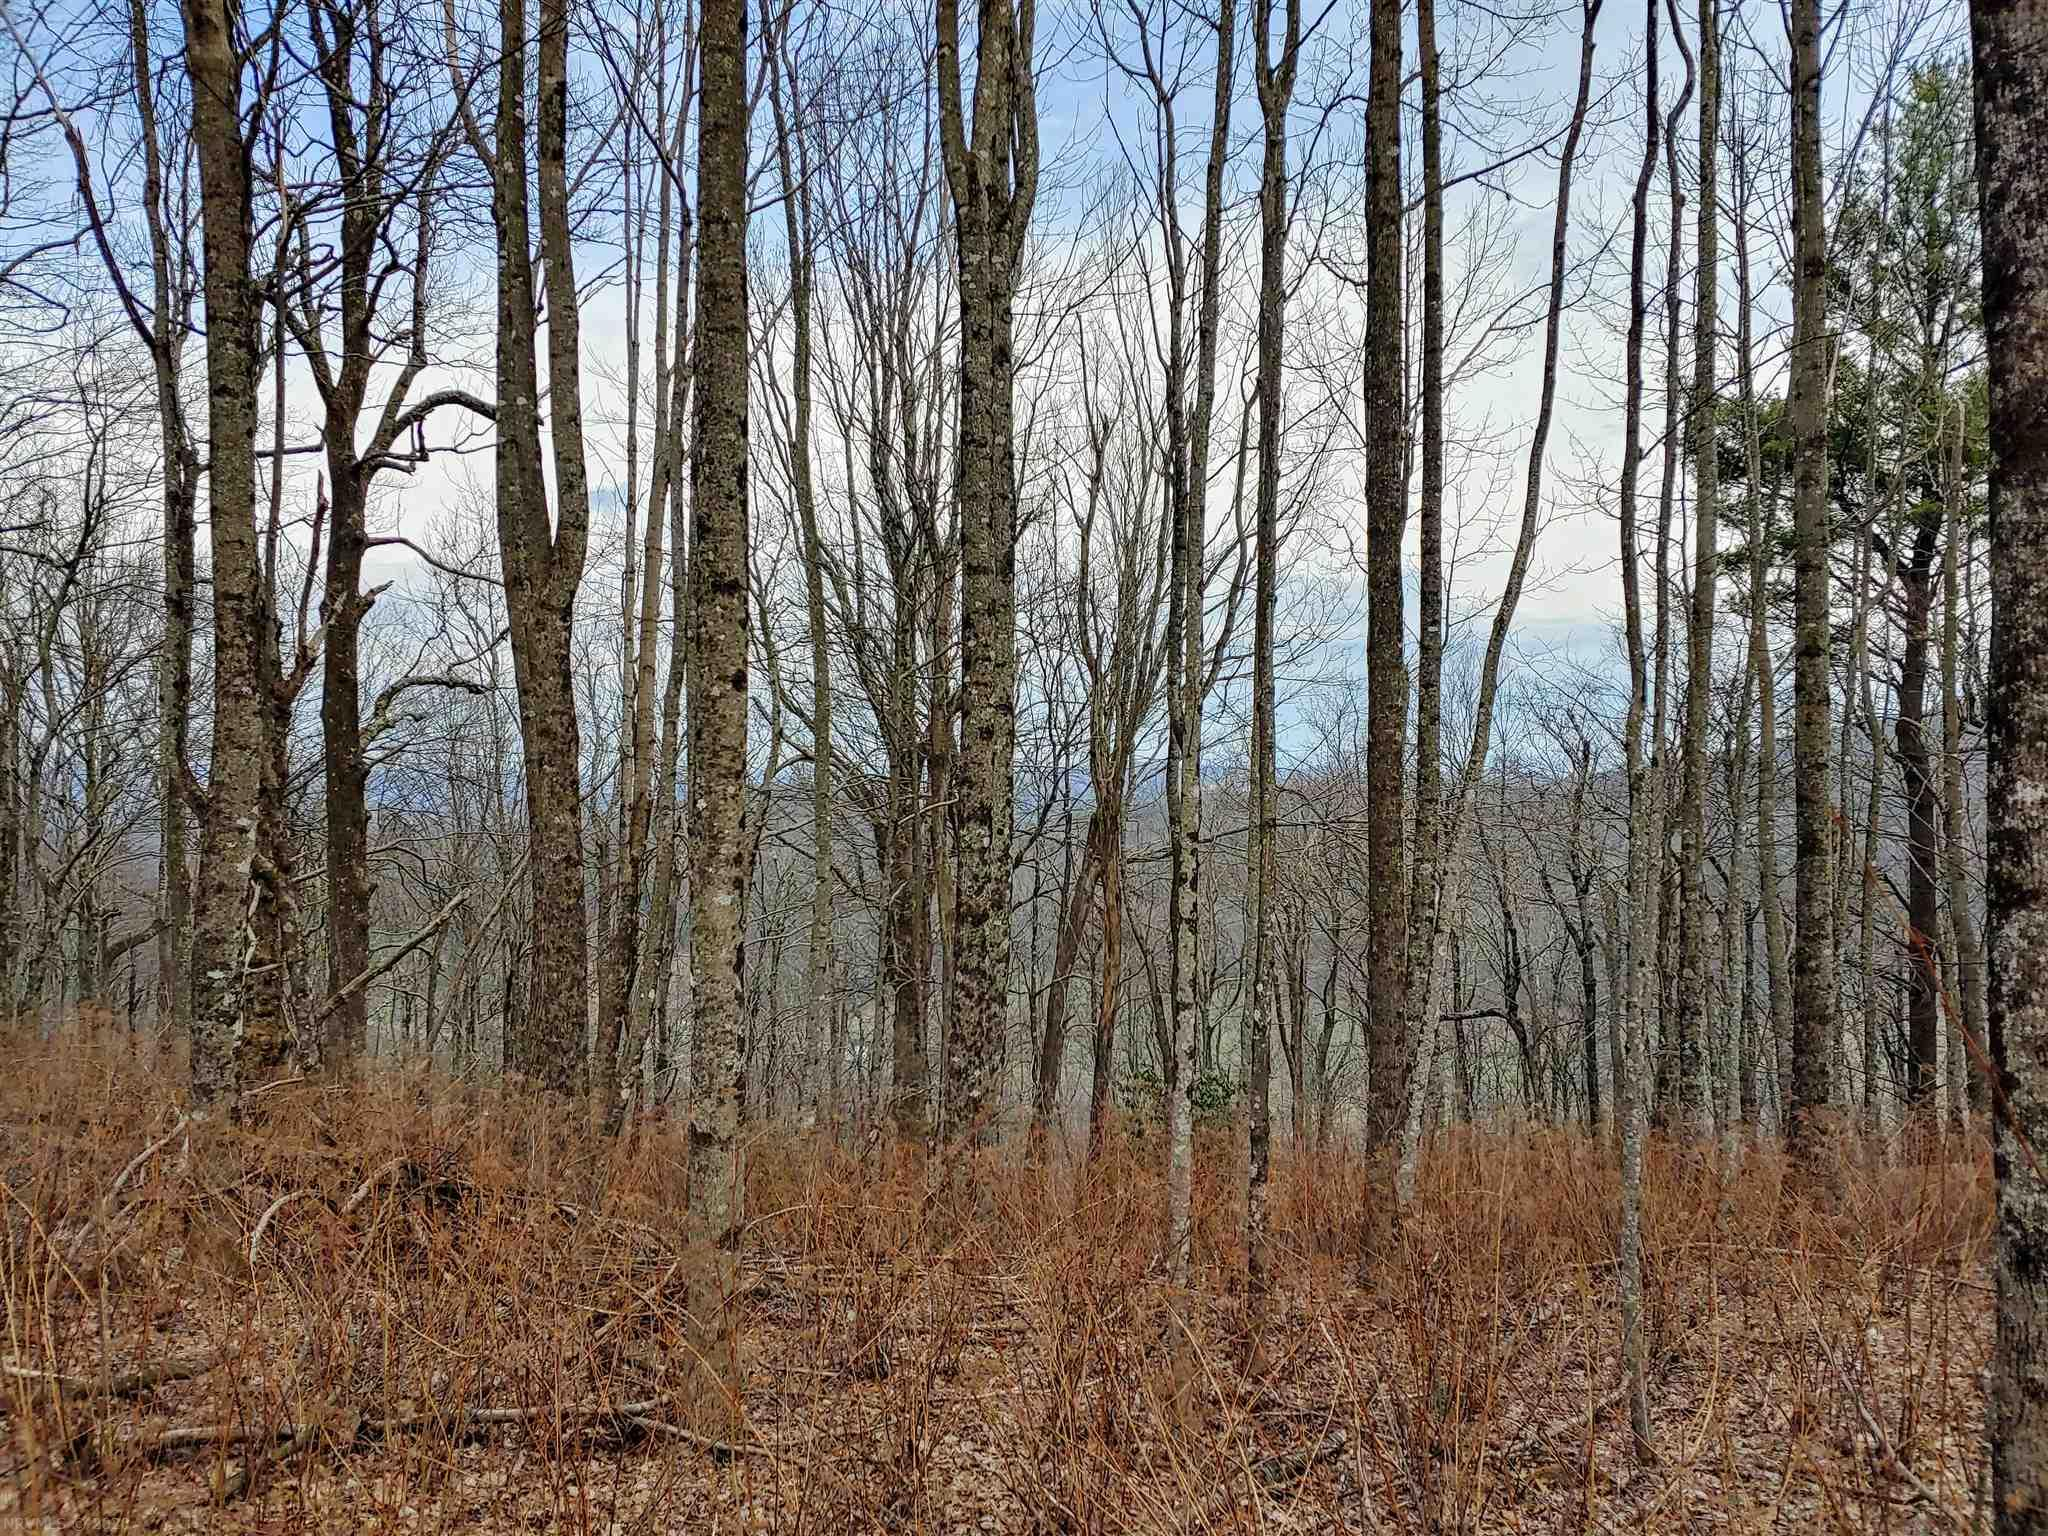 This 1.49 wooded acre lot offers potential for breathtaking views of the Blue Ridge Mountains with elevations  of 3,300 feet.  This lot provides a secluded feel and clearing potential for a family home.  If you are considering a getaway property take a look at this potential building spot.  Property does have covenants and restrictions.